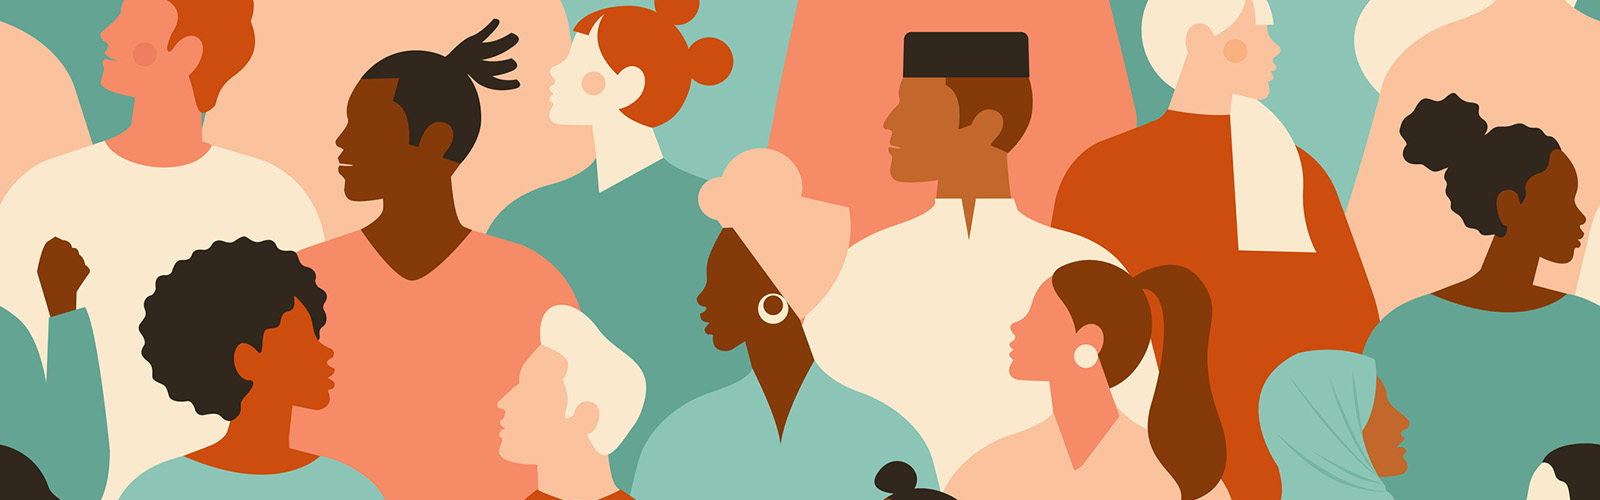 Promoting health equity in the U.S. and beyond